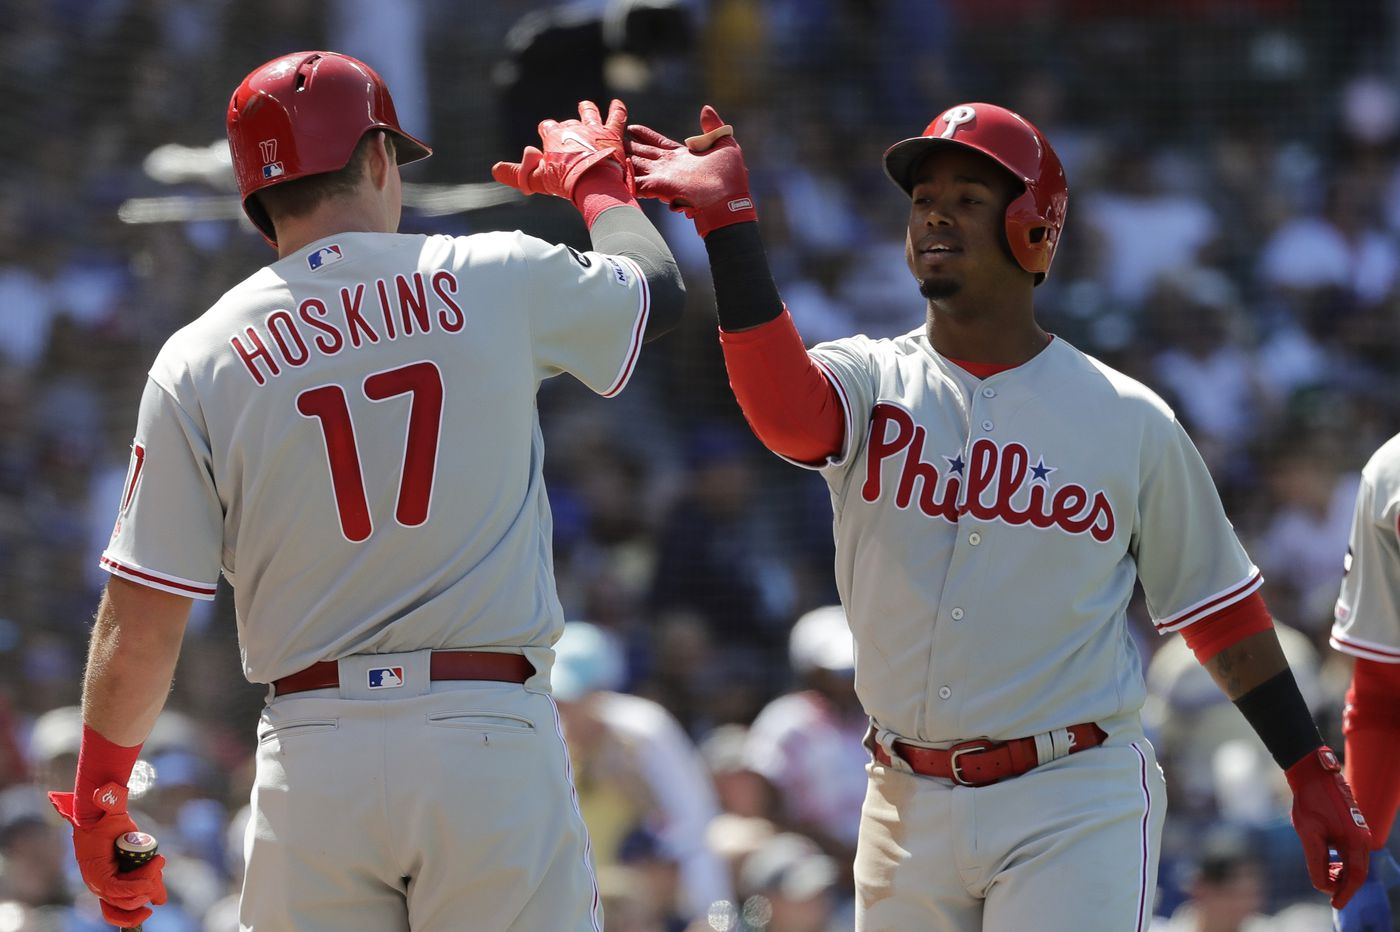 Phillies hang on for 9-7 win, series split against Cubs